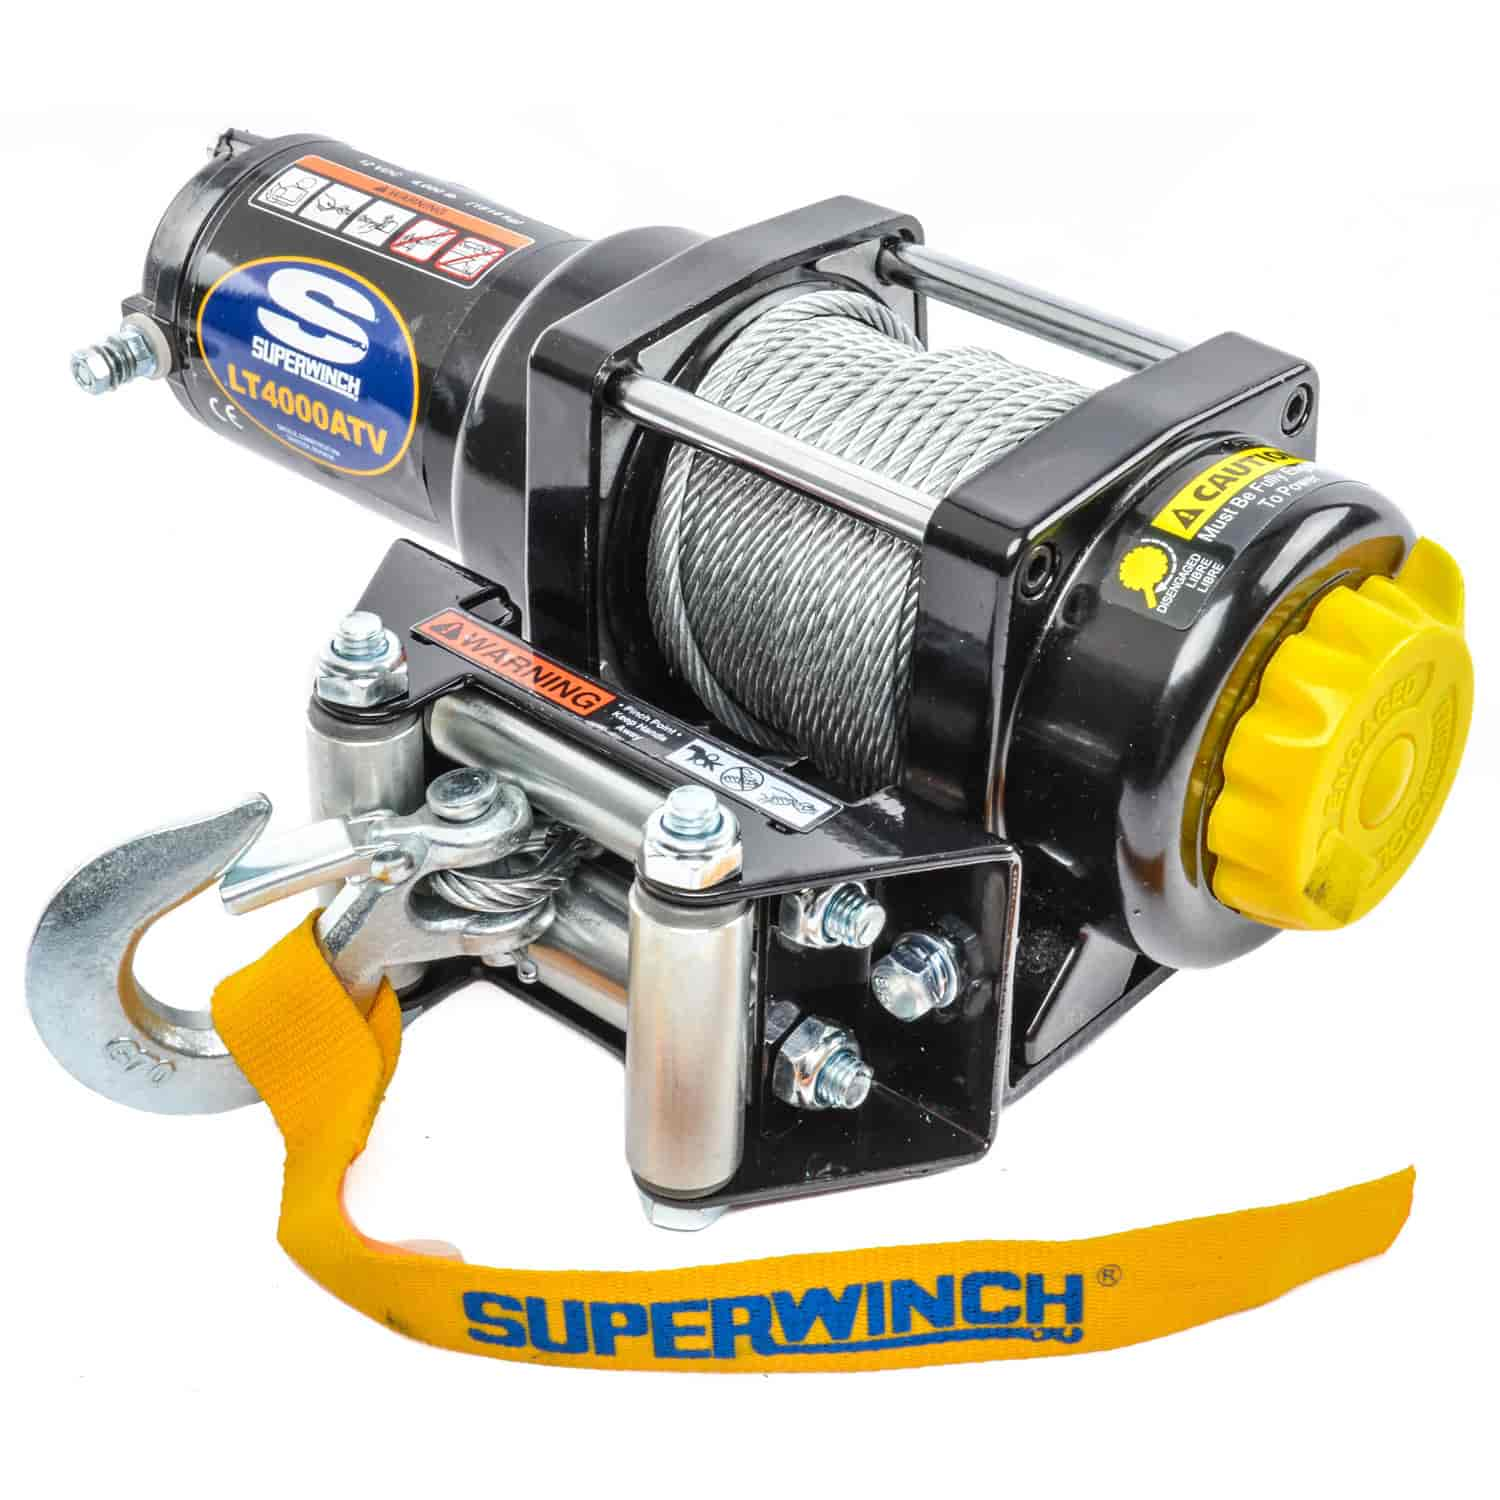 hight resolution of superwinch 1140220